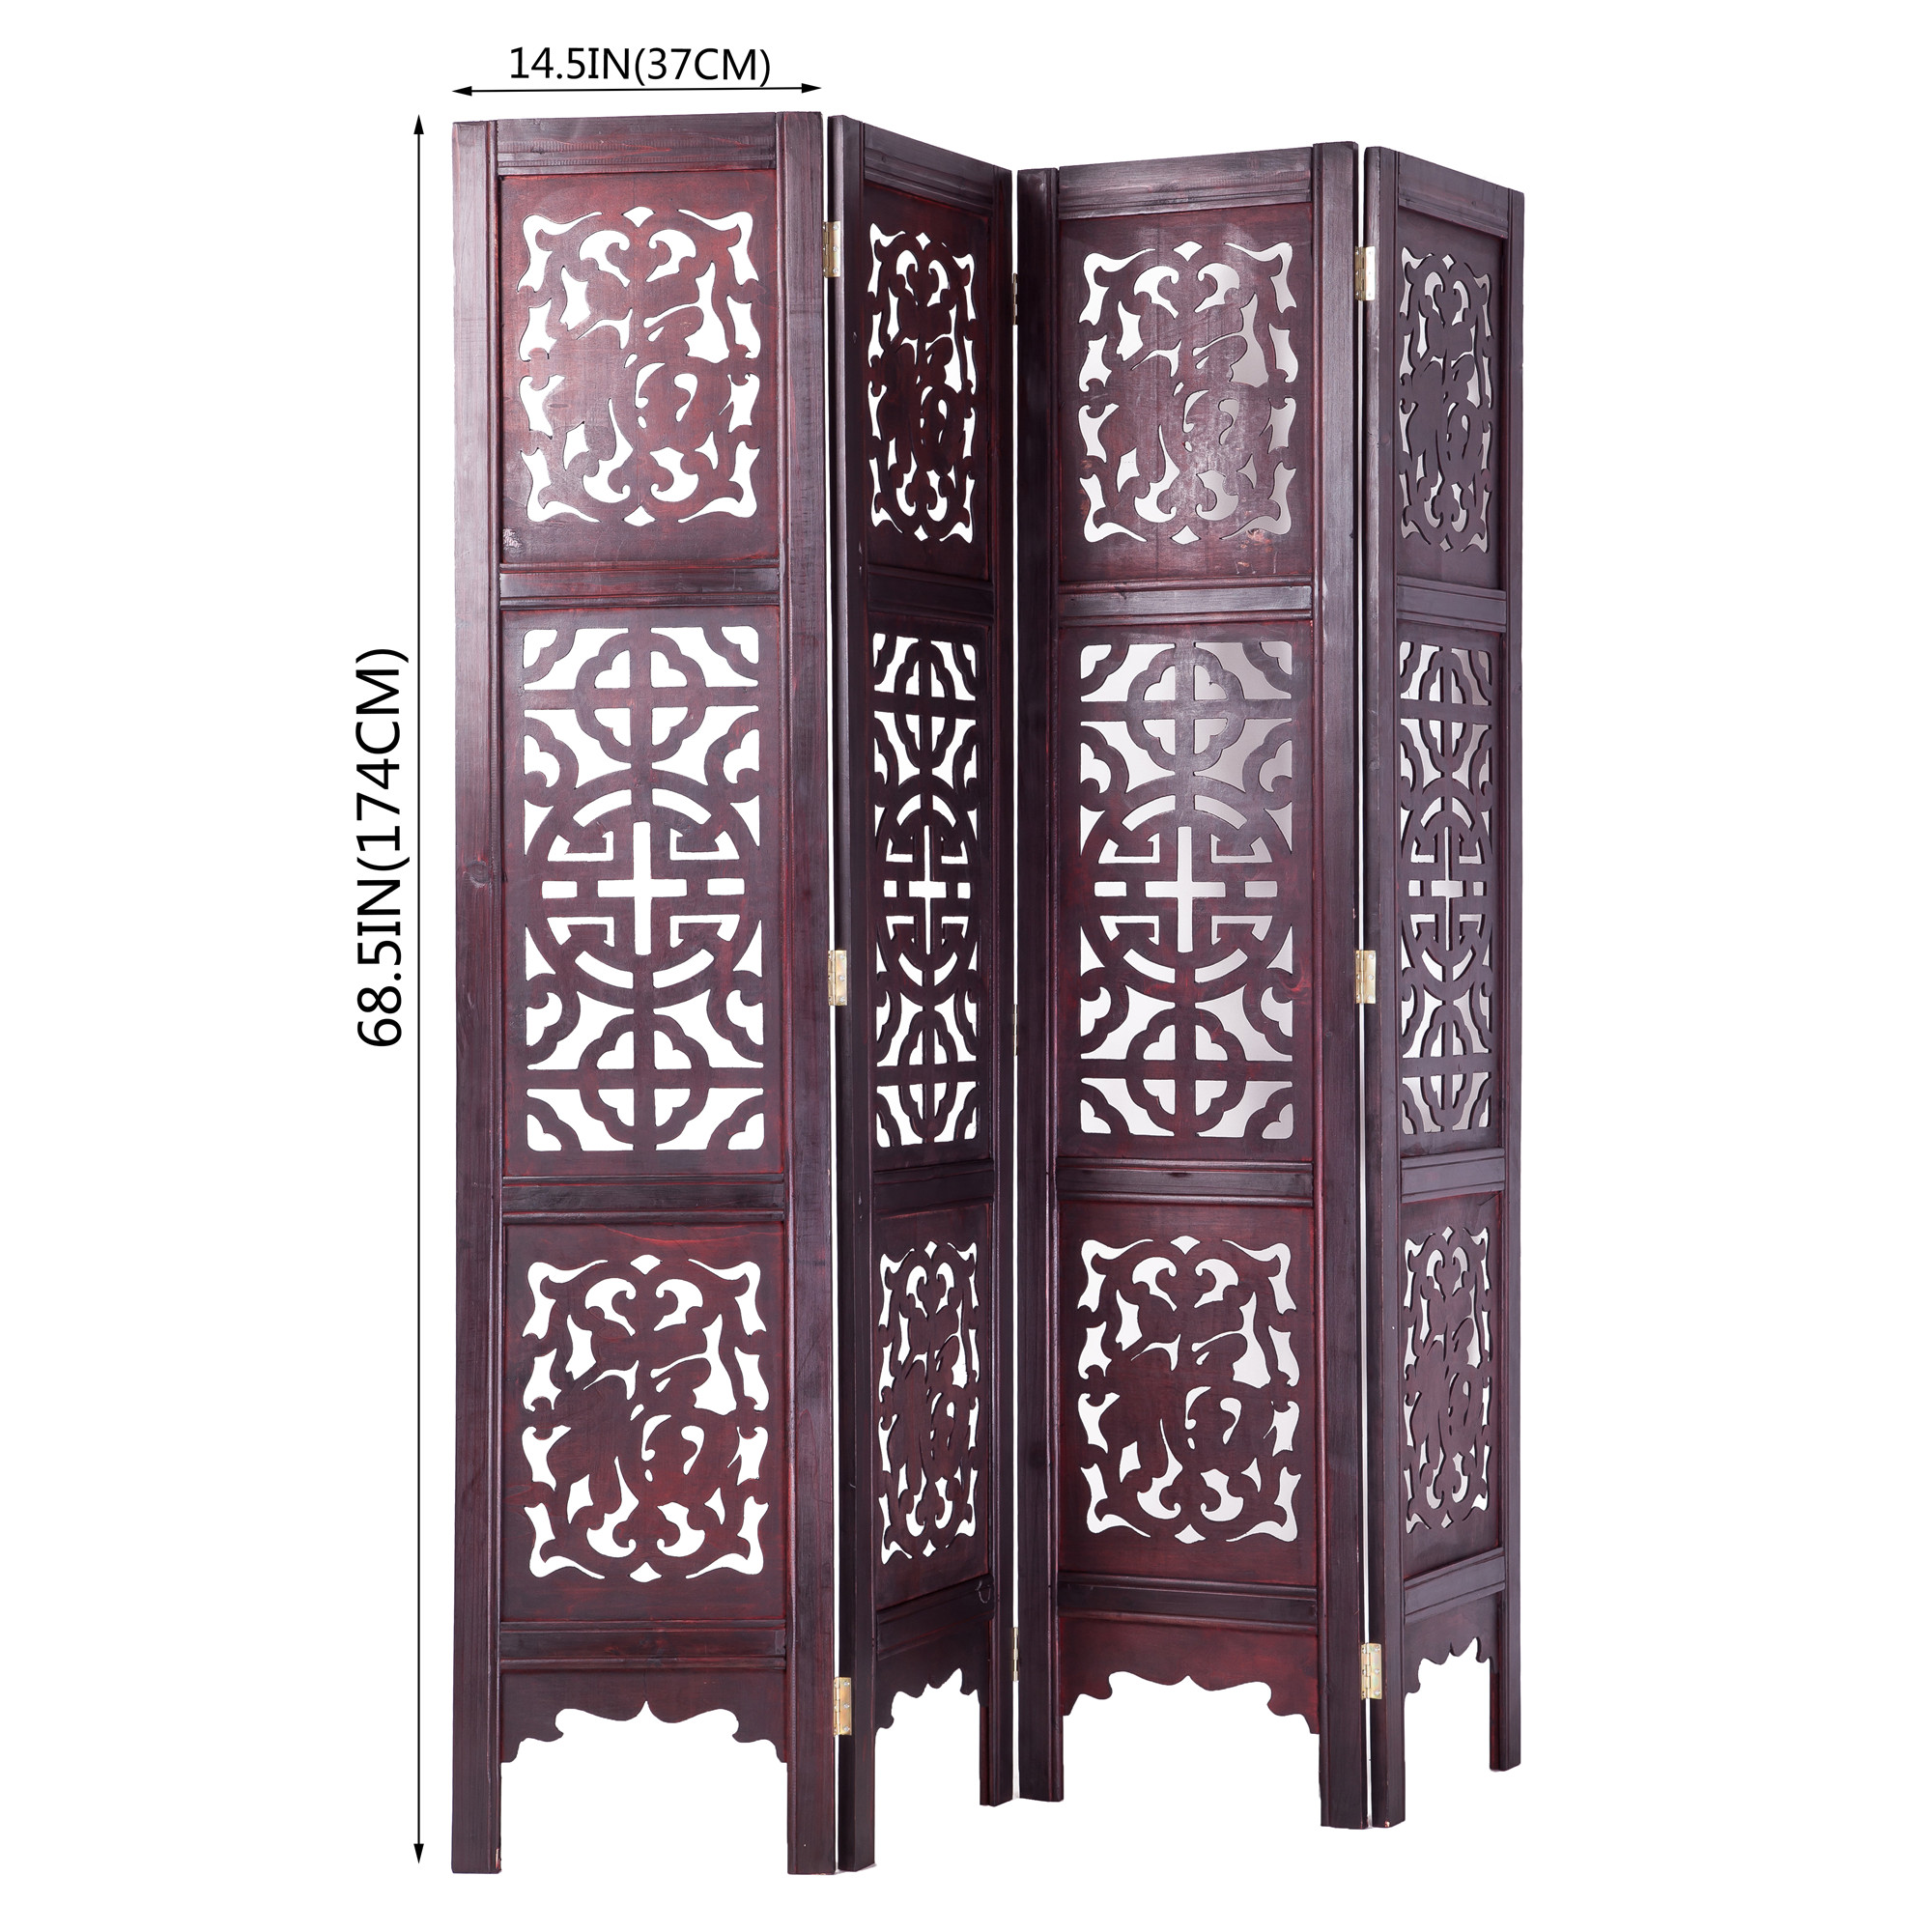 Vintage Oriental Style 4 Panels Screen Room Divider Fur1009. Le Living Room Bar Strasbourg. Living Room Partition Design. Easy Living Room Planner. Yellow Beach Living Room. W Hotel Living Room Dc. Living Room Decor Ideas Rustic. Living Room Decor Ideas Simple. Living Room With Gray Paint